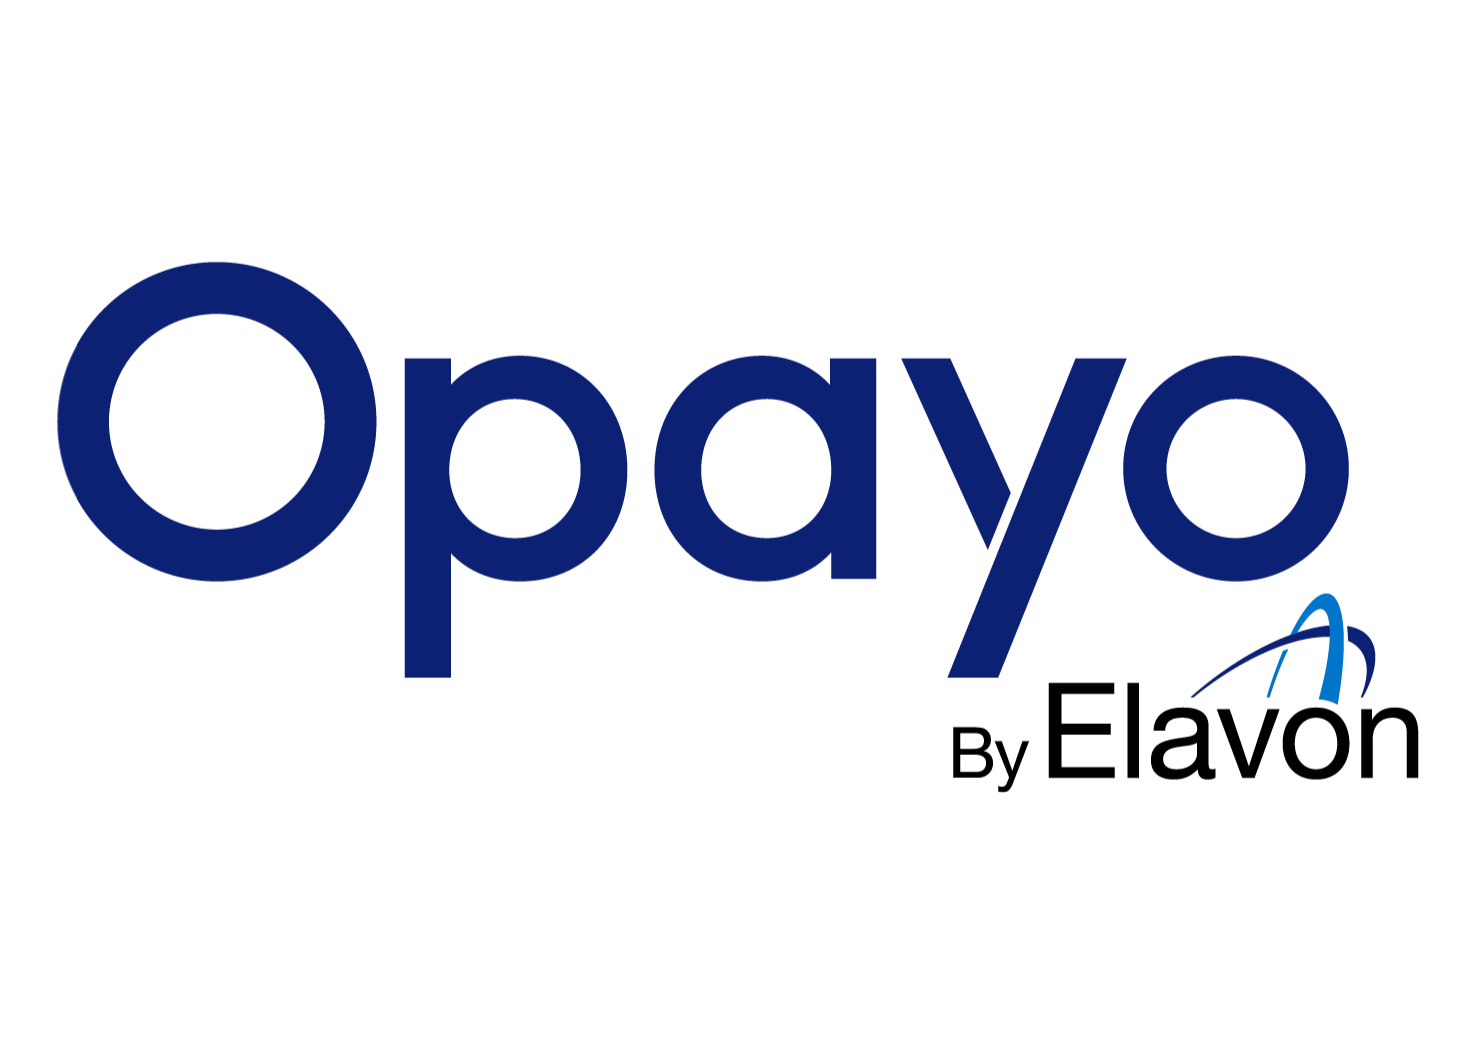 Payments Secured by Opayo from Elavon